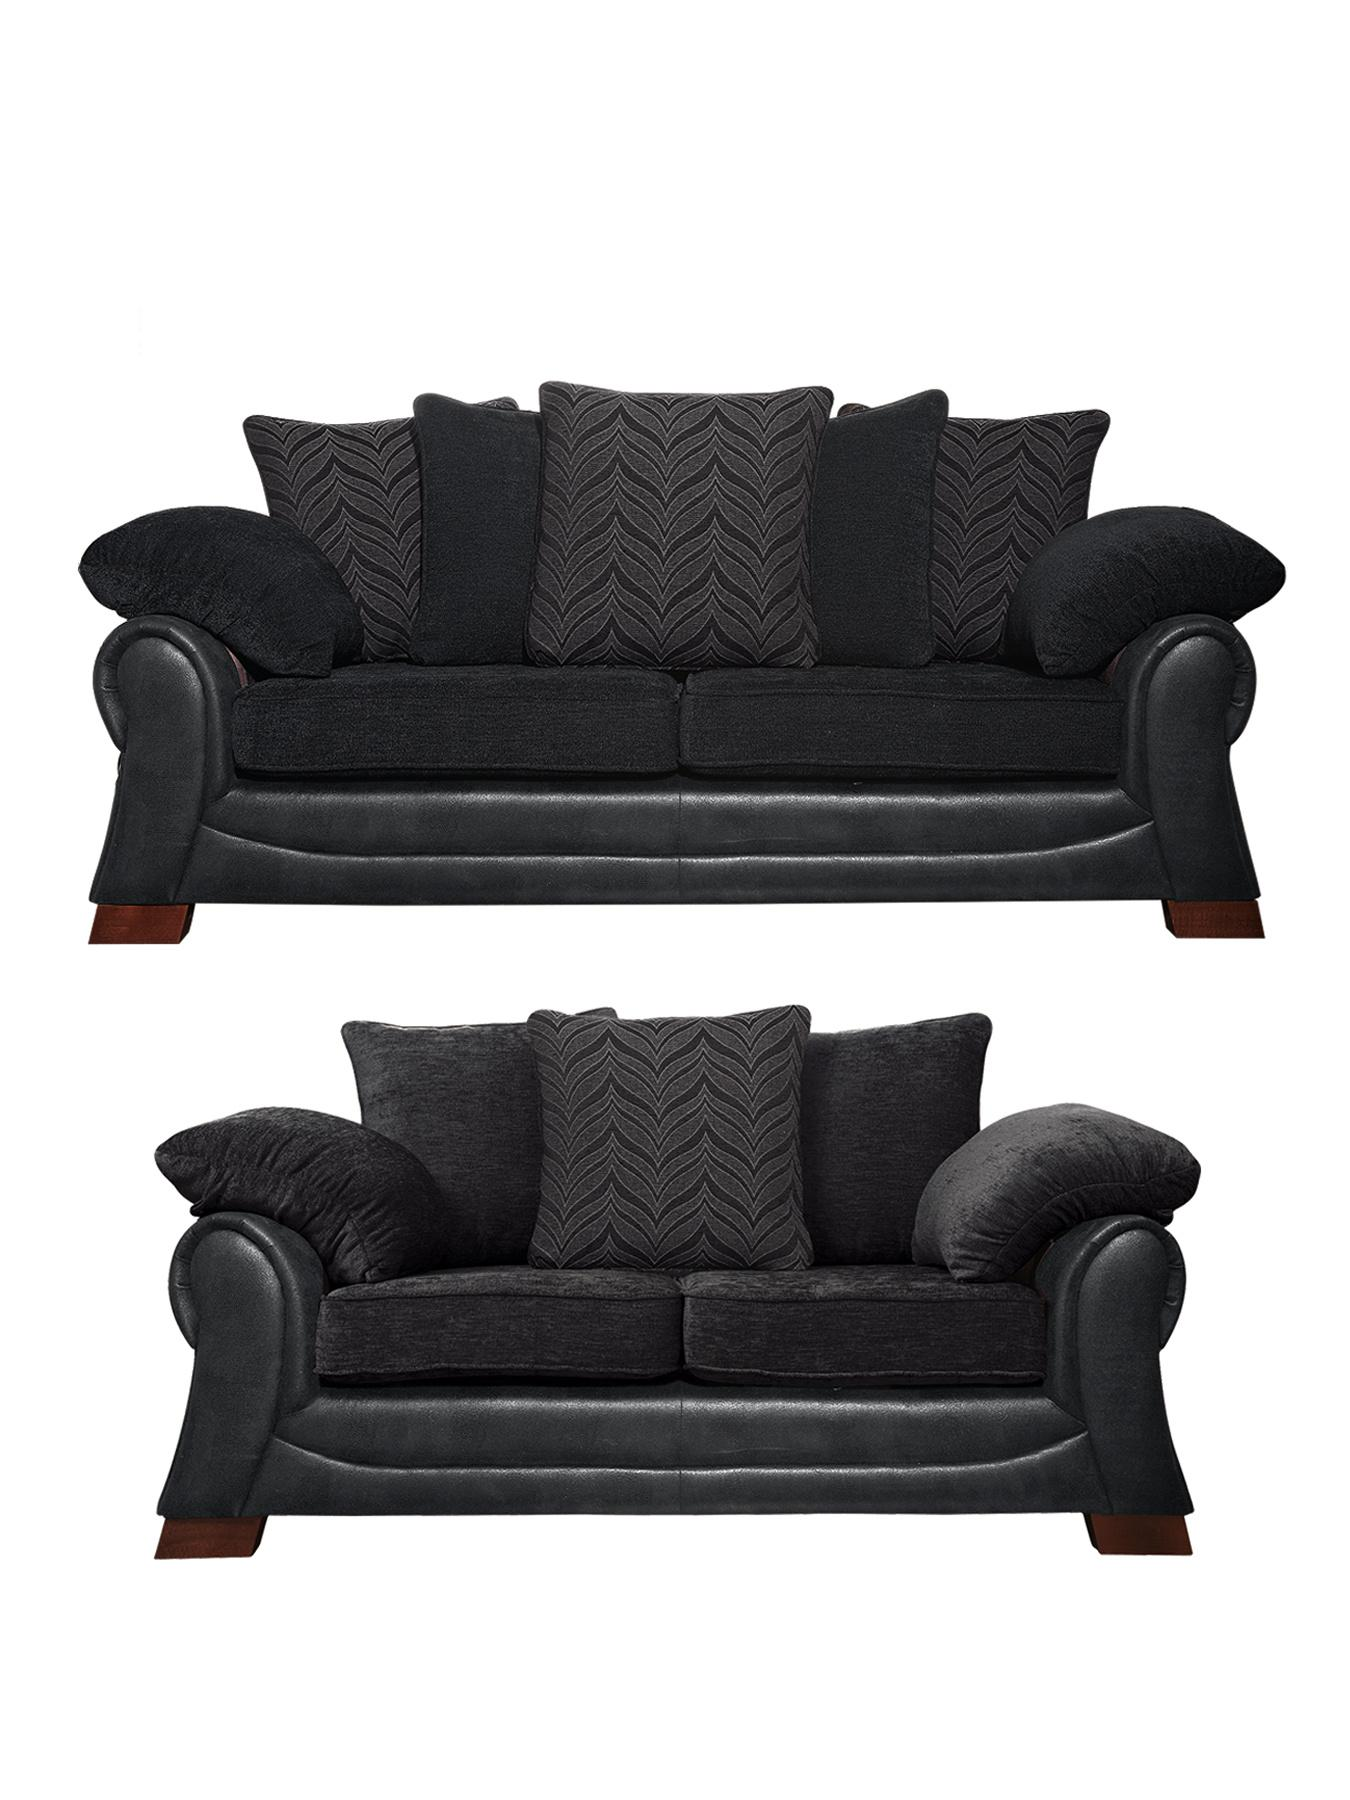 Mombassa 3-Seater + 2-Seater Sofa Set - Chocolate, Chocolate,Black at Very, from Littlewoods